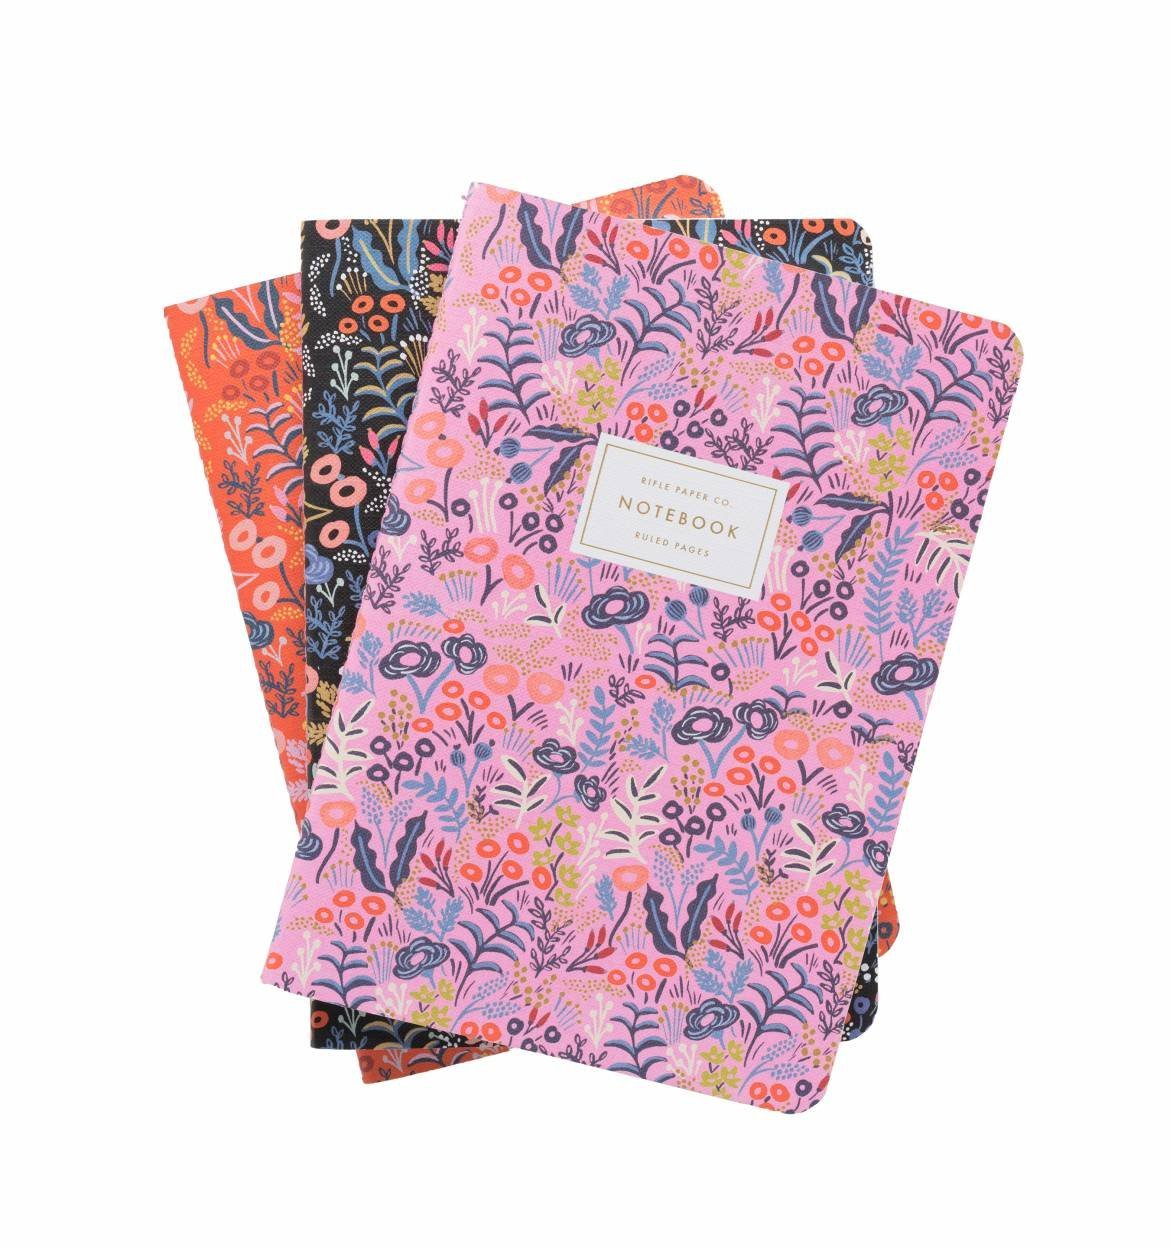 Rifle Paper Company Tapestry Notebook Set Of Three Assorted Stitched Notebooks by Plus Rifle Paper Co.